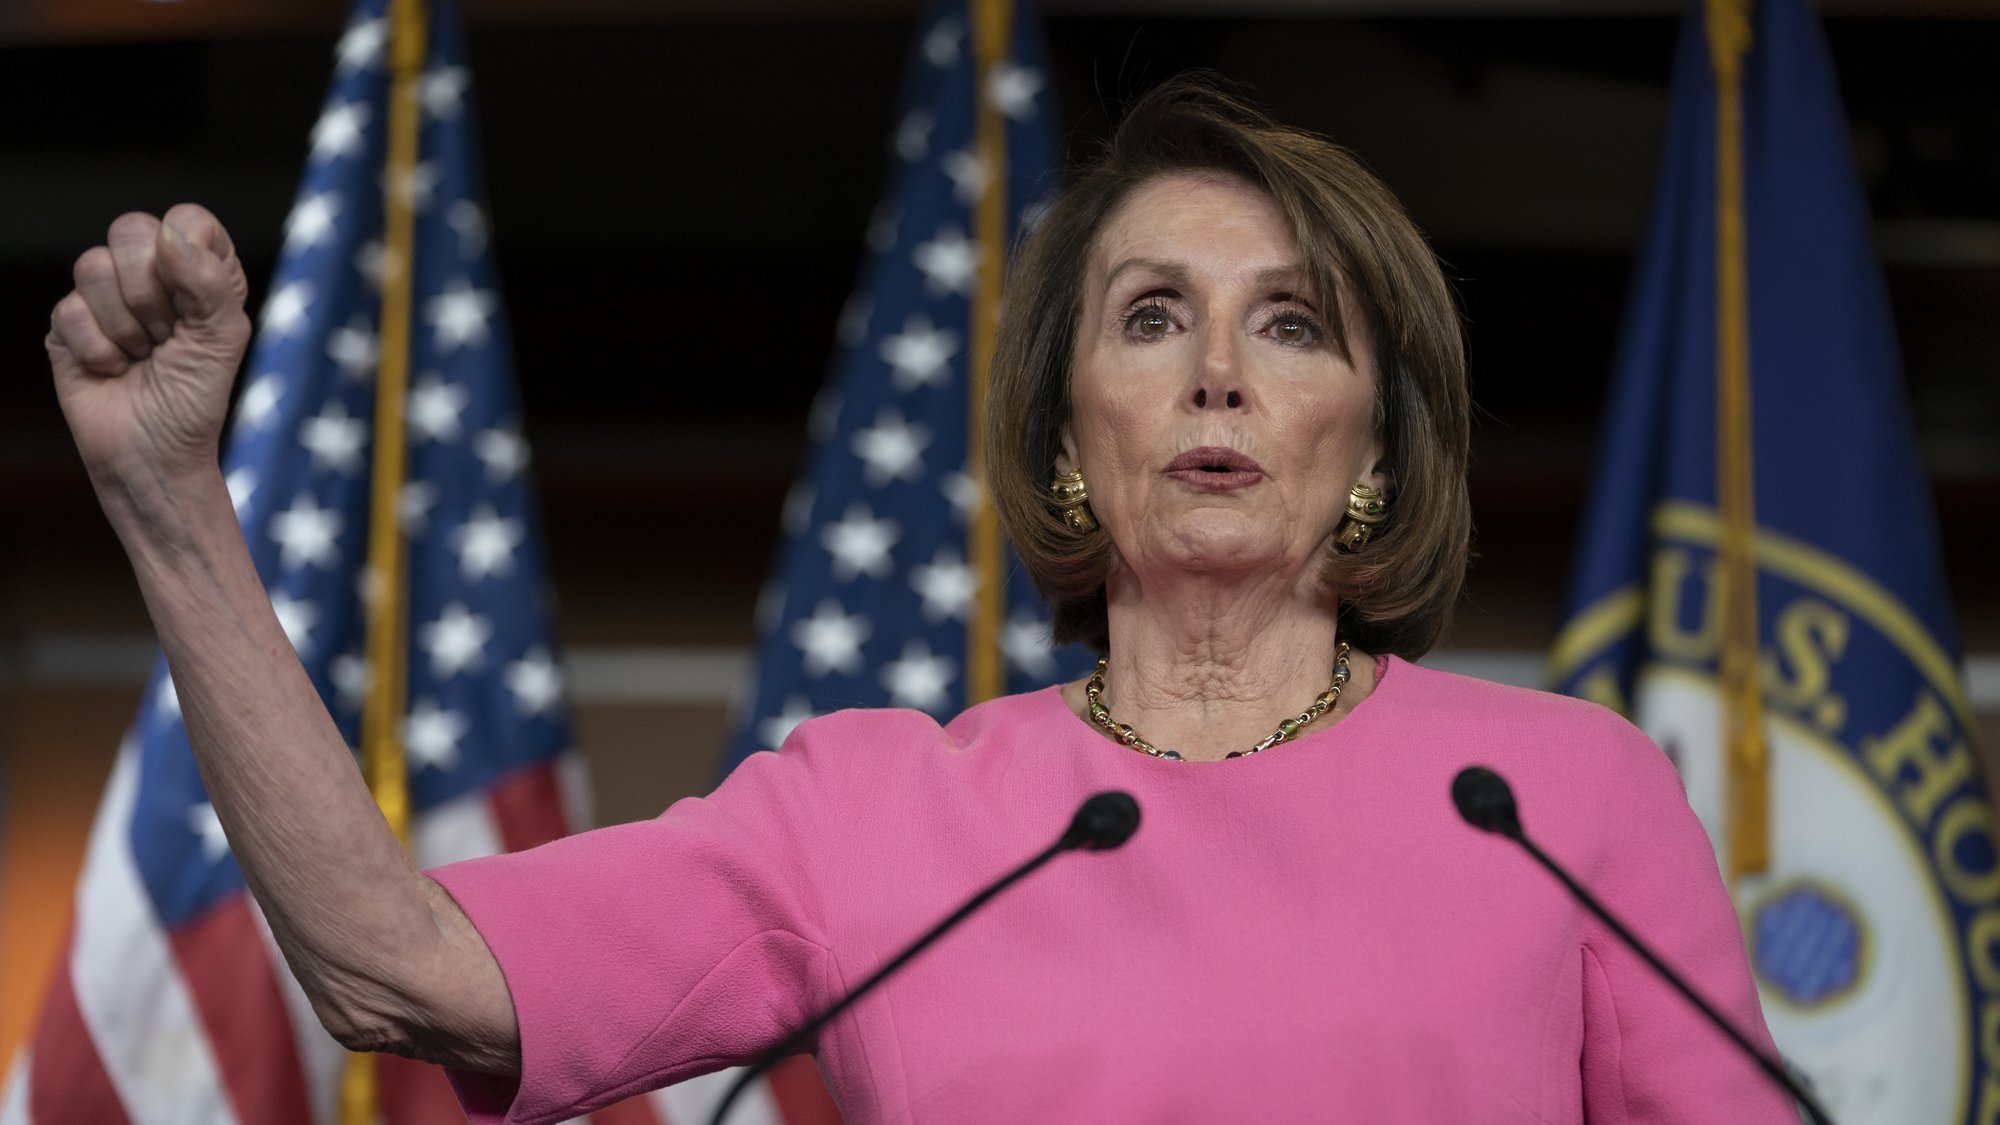 Pelosi questions Trump's fitness to stay